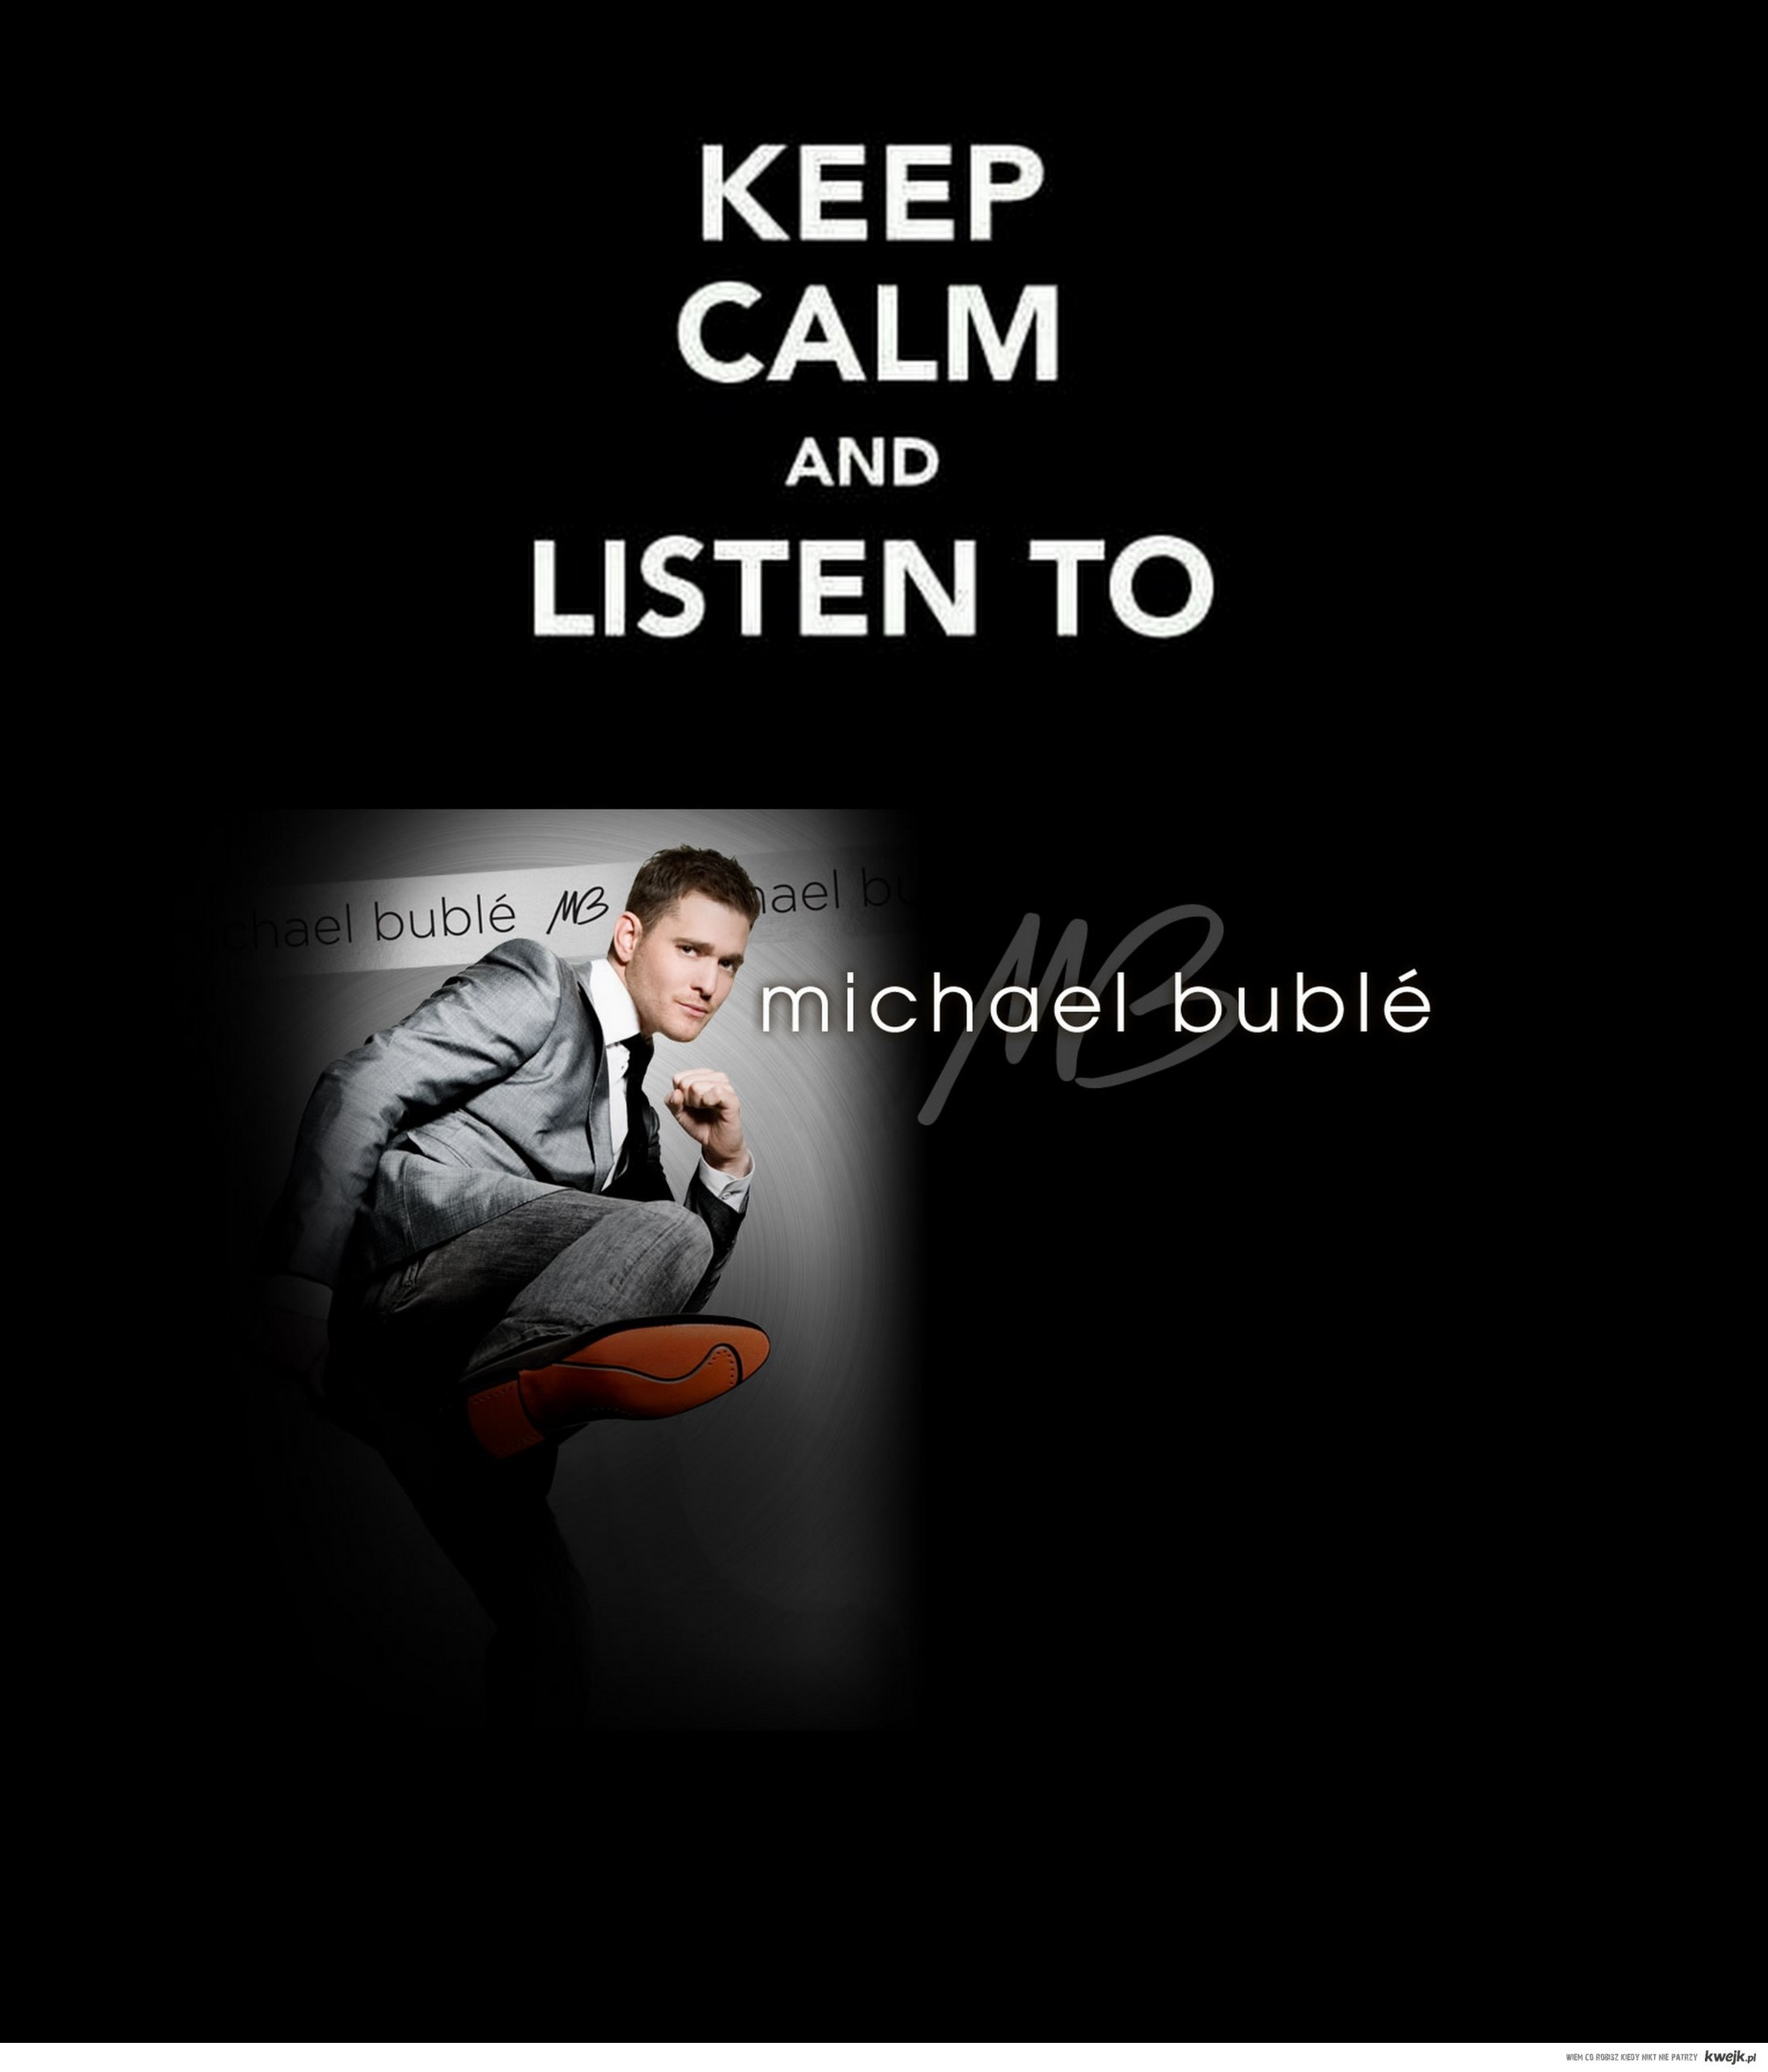 keep calm and listen to buble